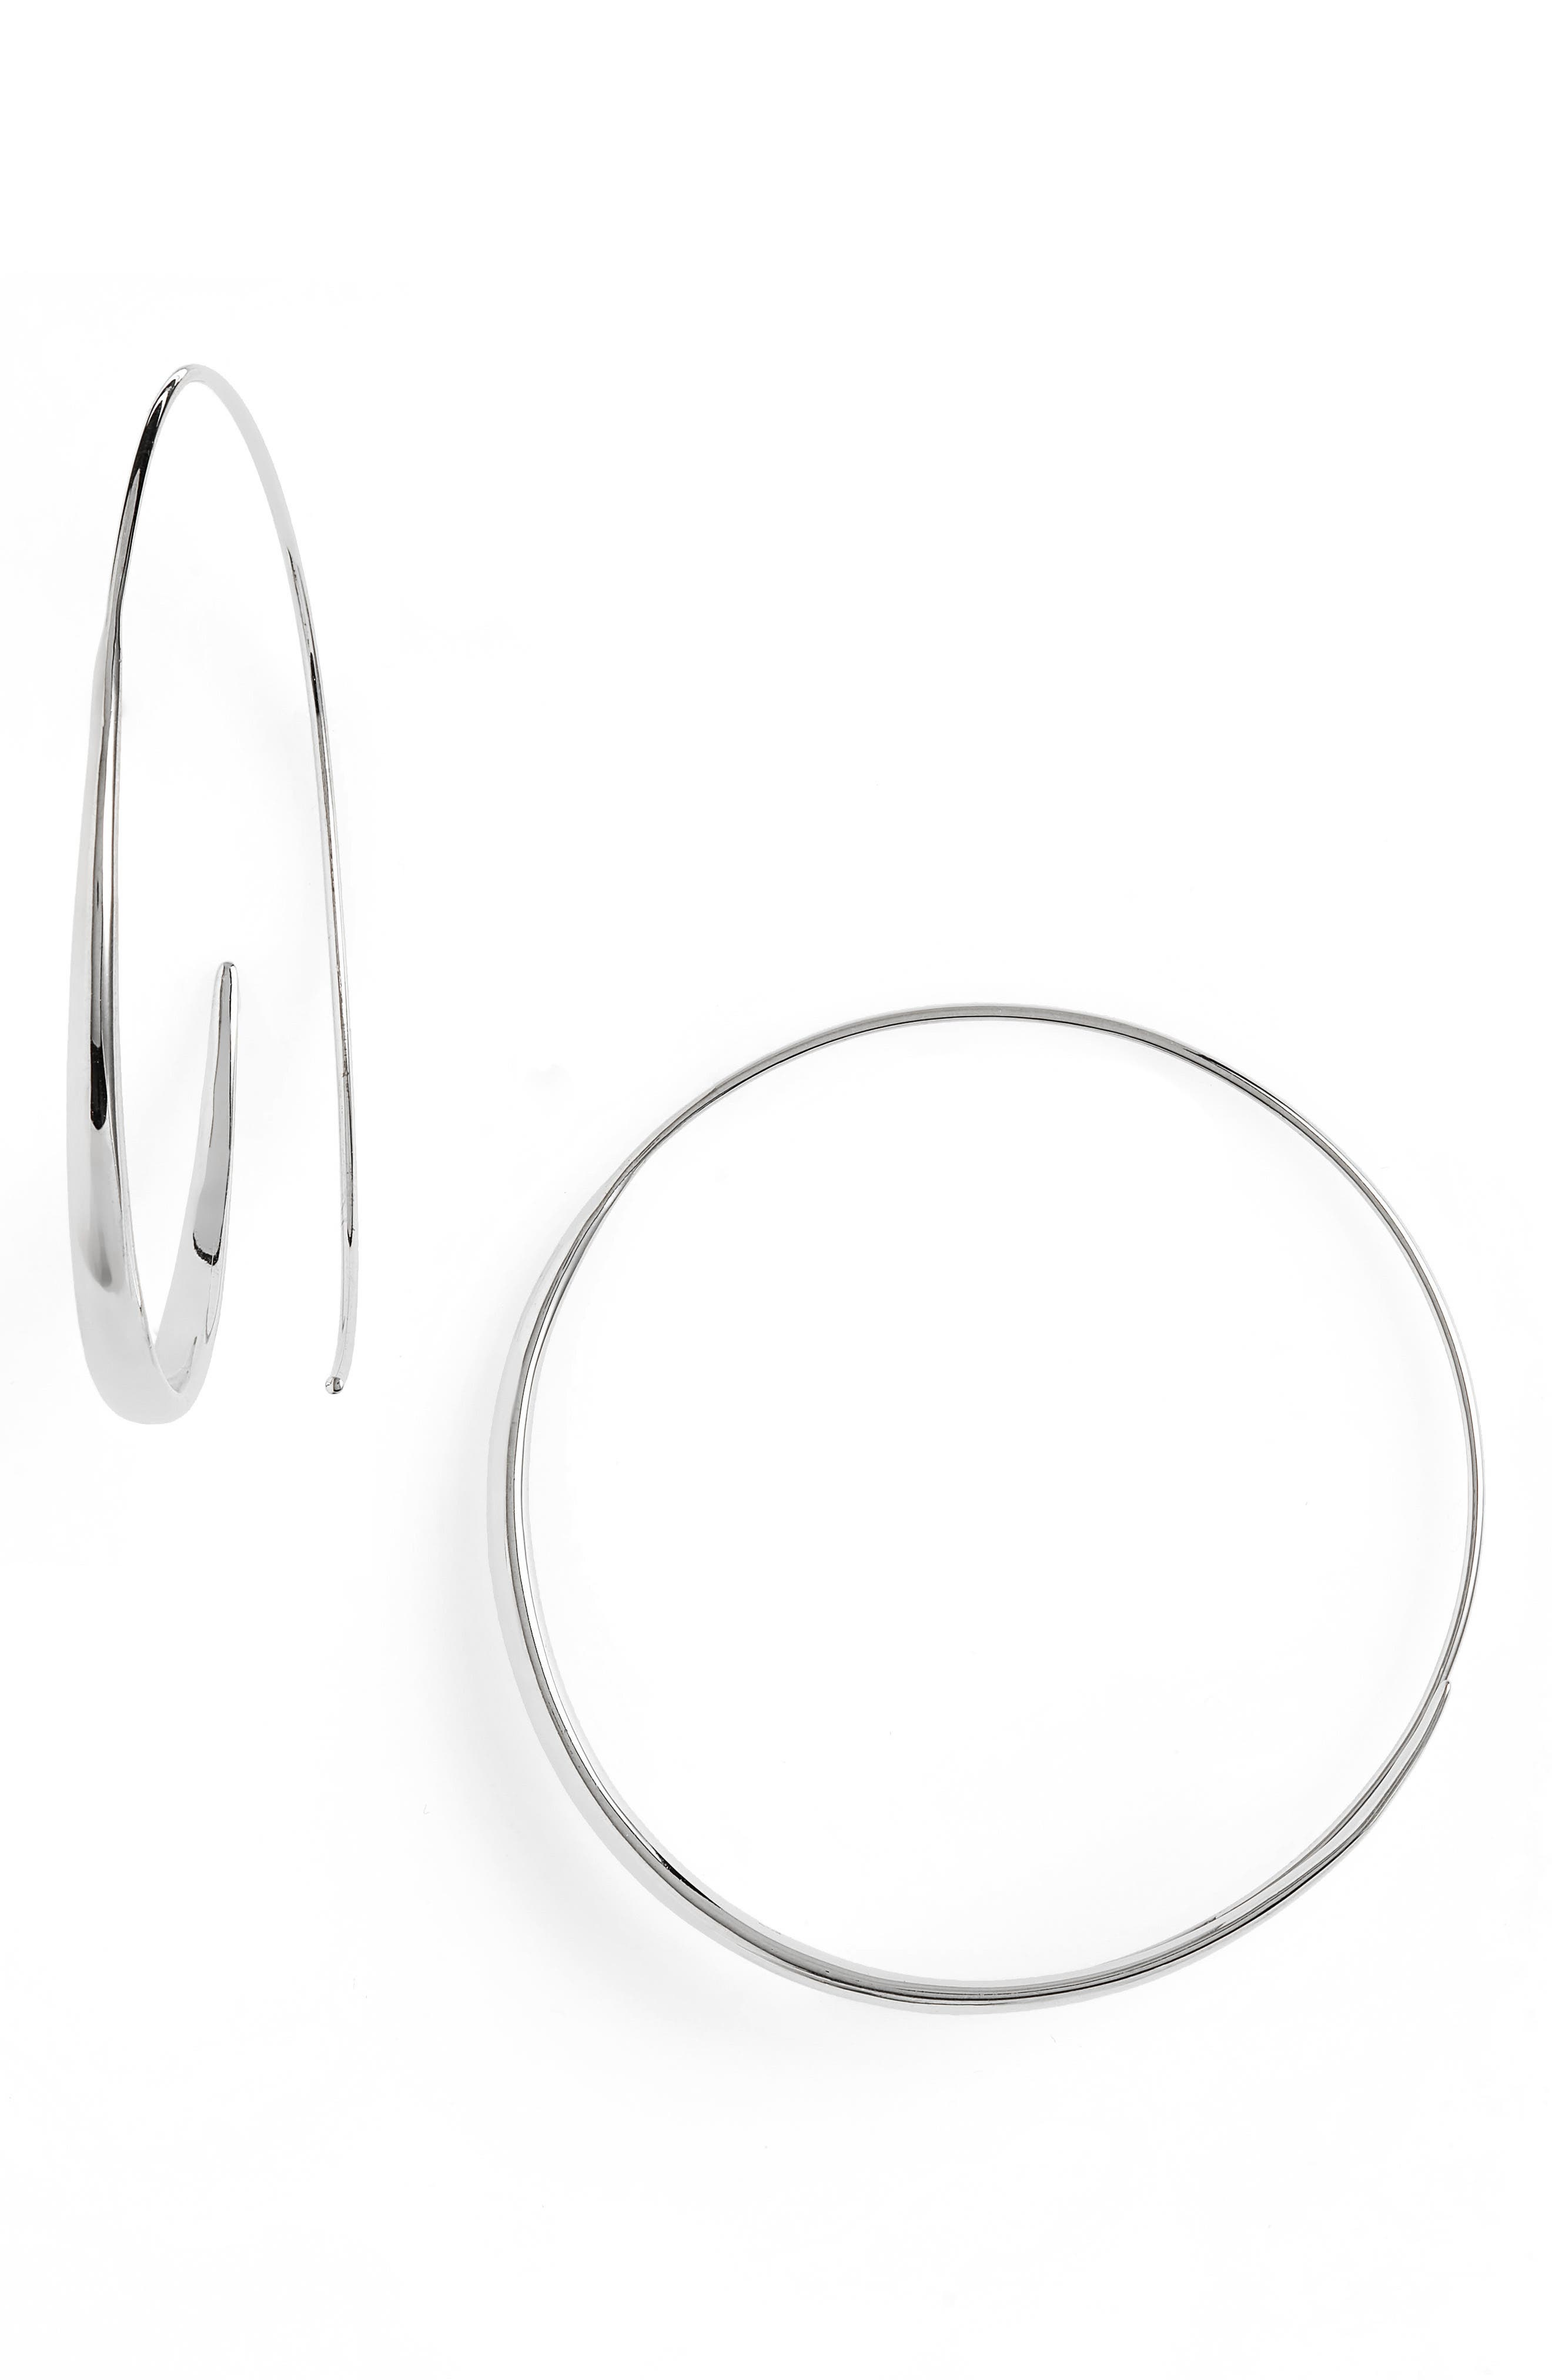 Extra Large Ear Loop Earrings,                             Main thumbnail 1, color,                             925 STERLING SILVER